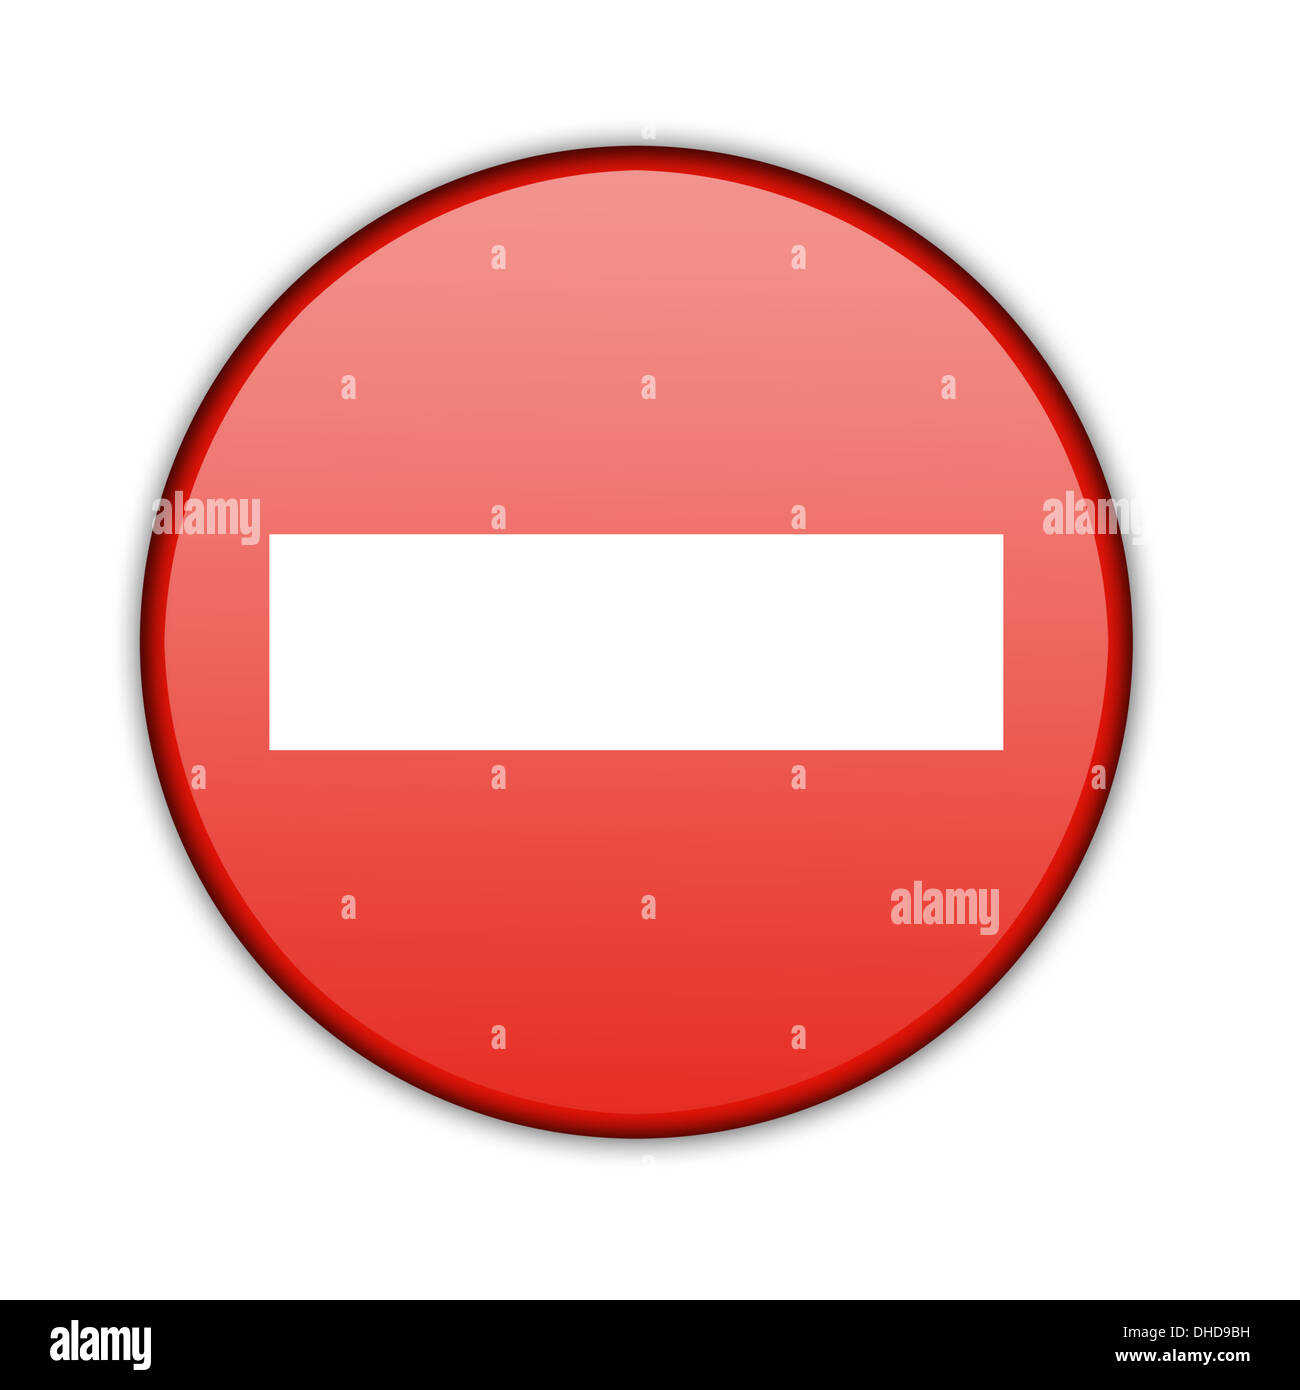 Illustration of a traffic sign - No Entry. - Stock Image